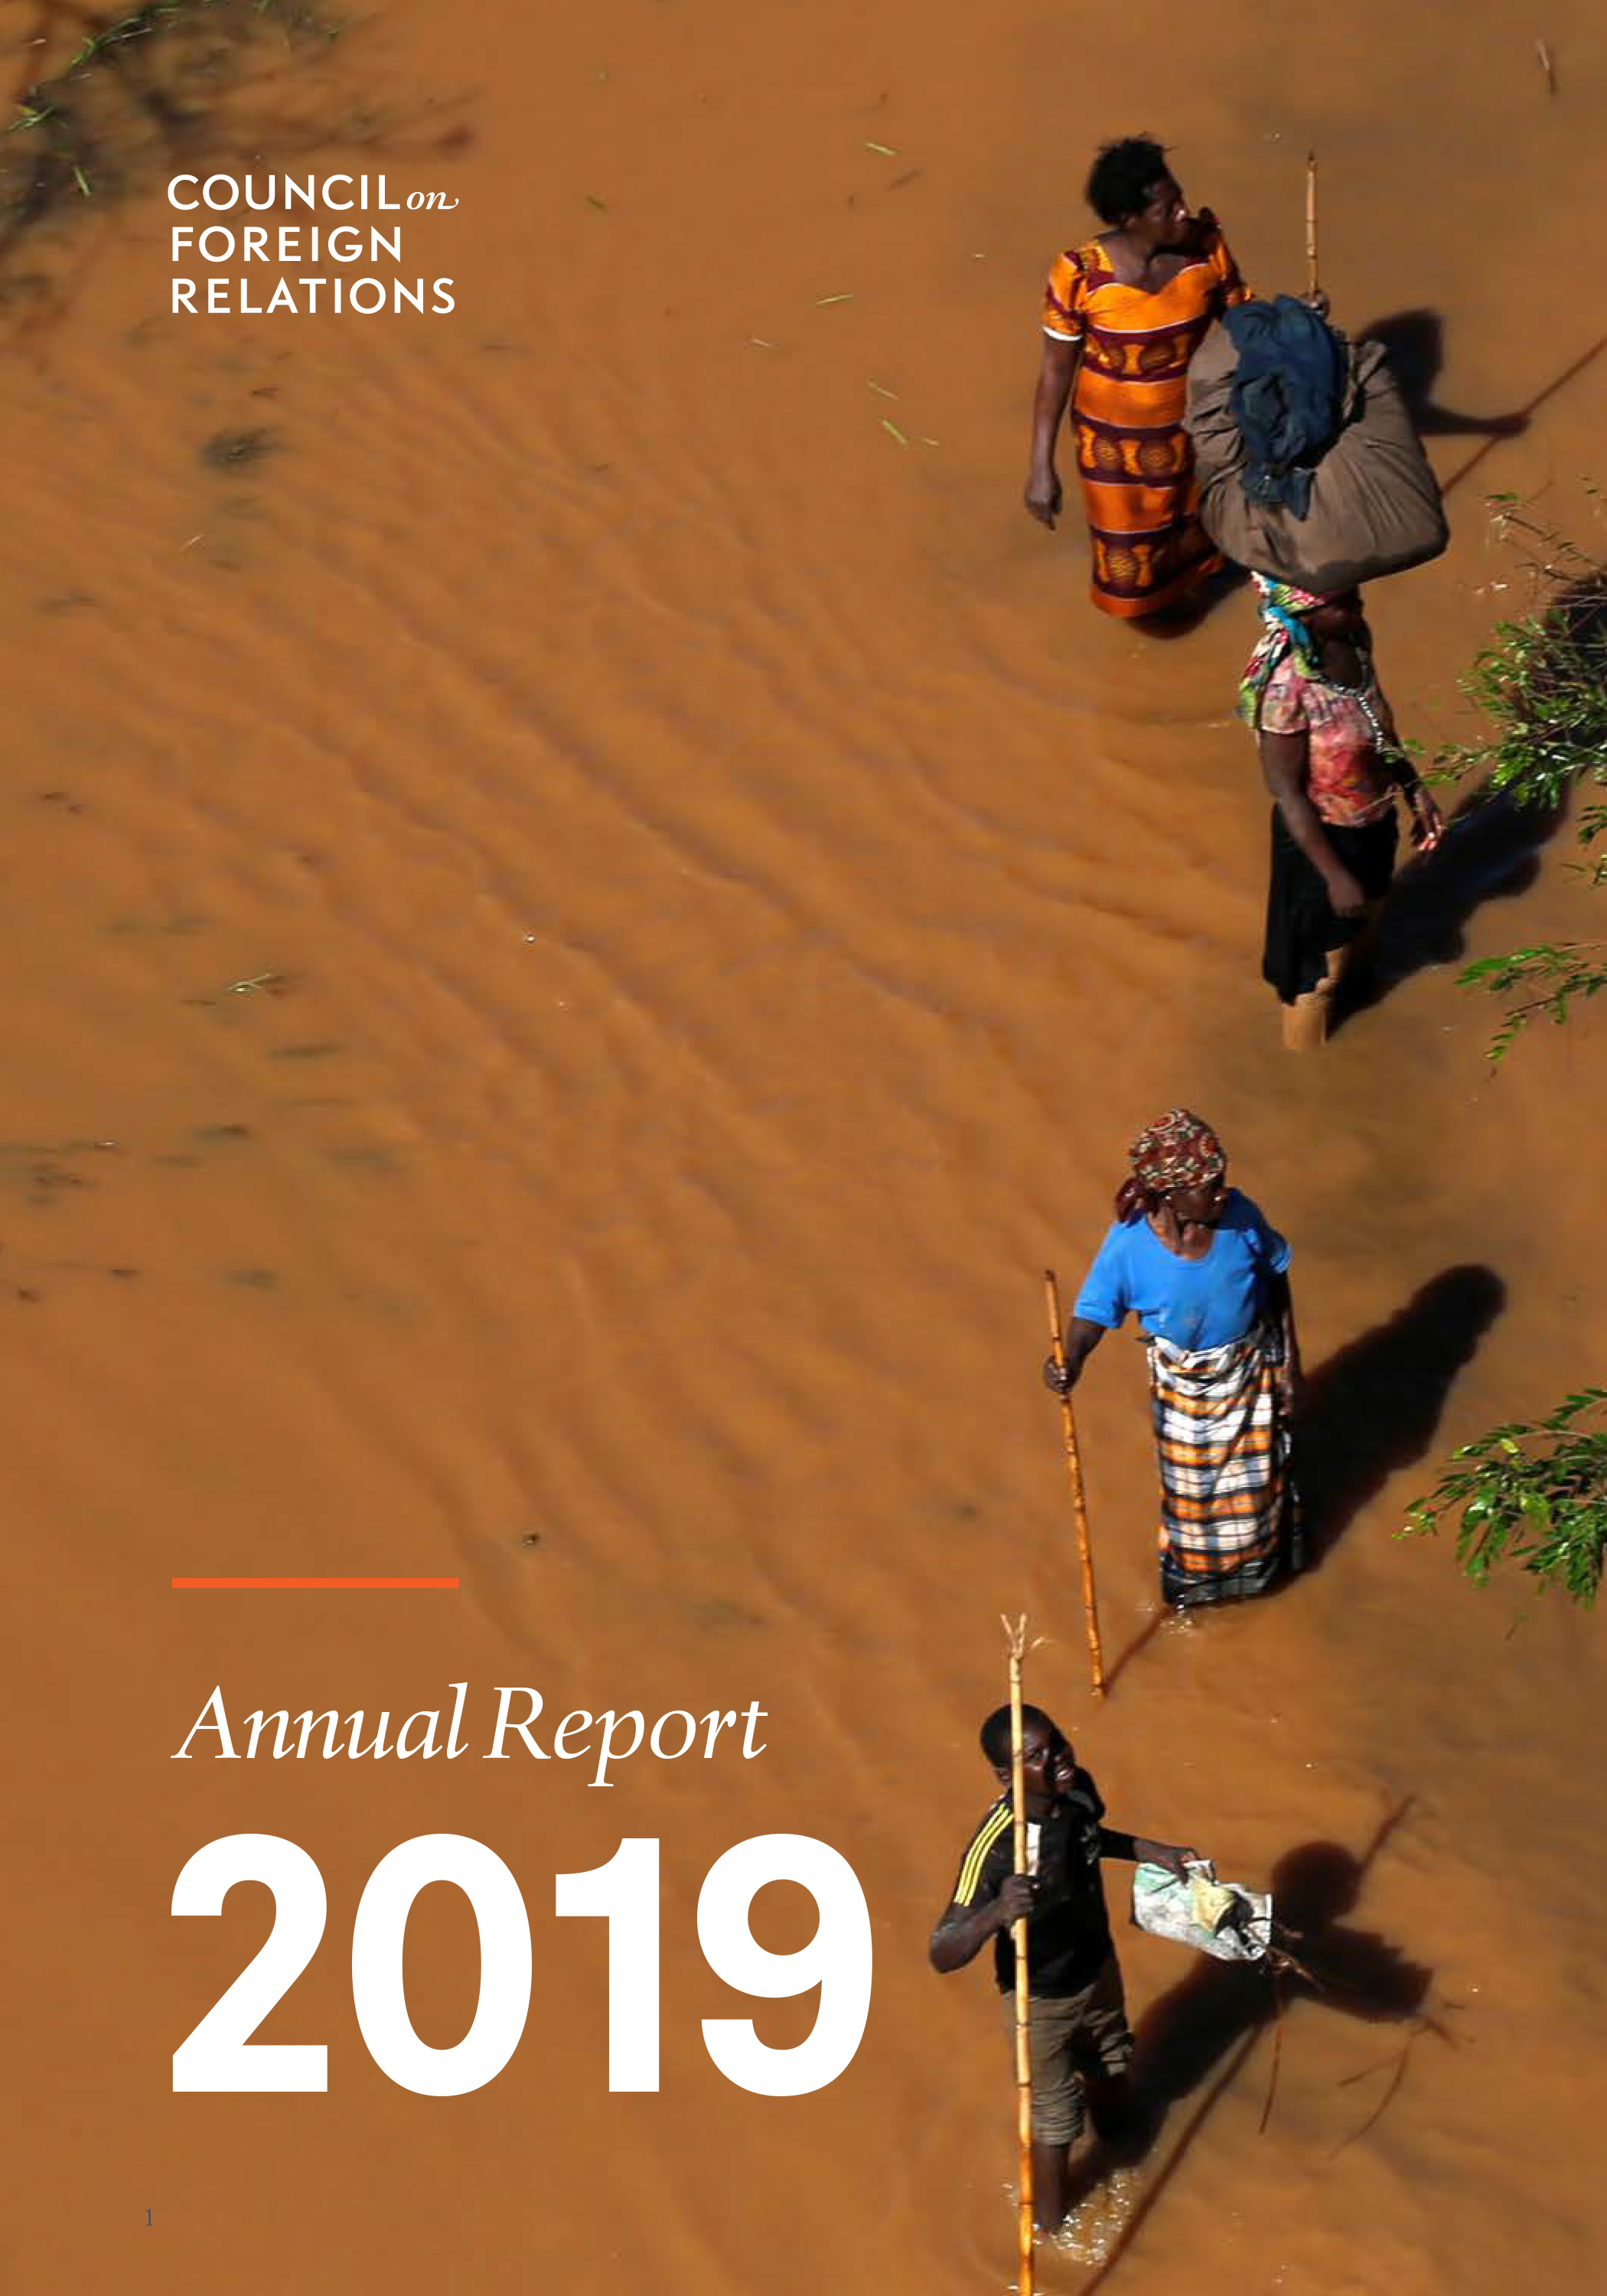 2019 Annual Report of the Council of Foreign Relations